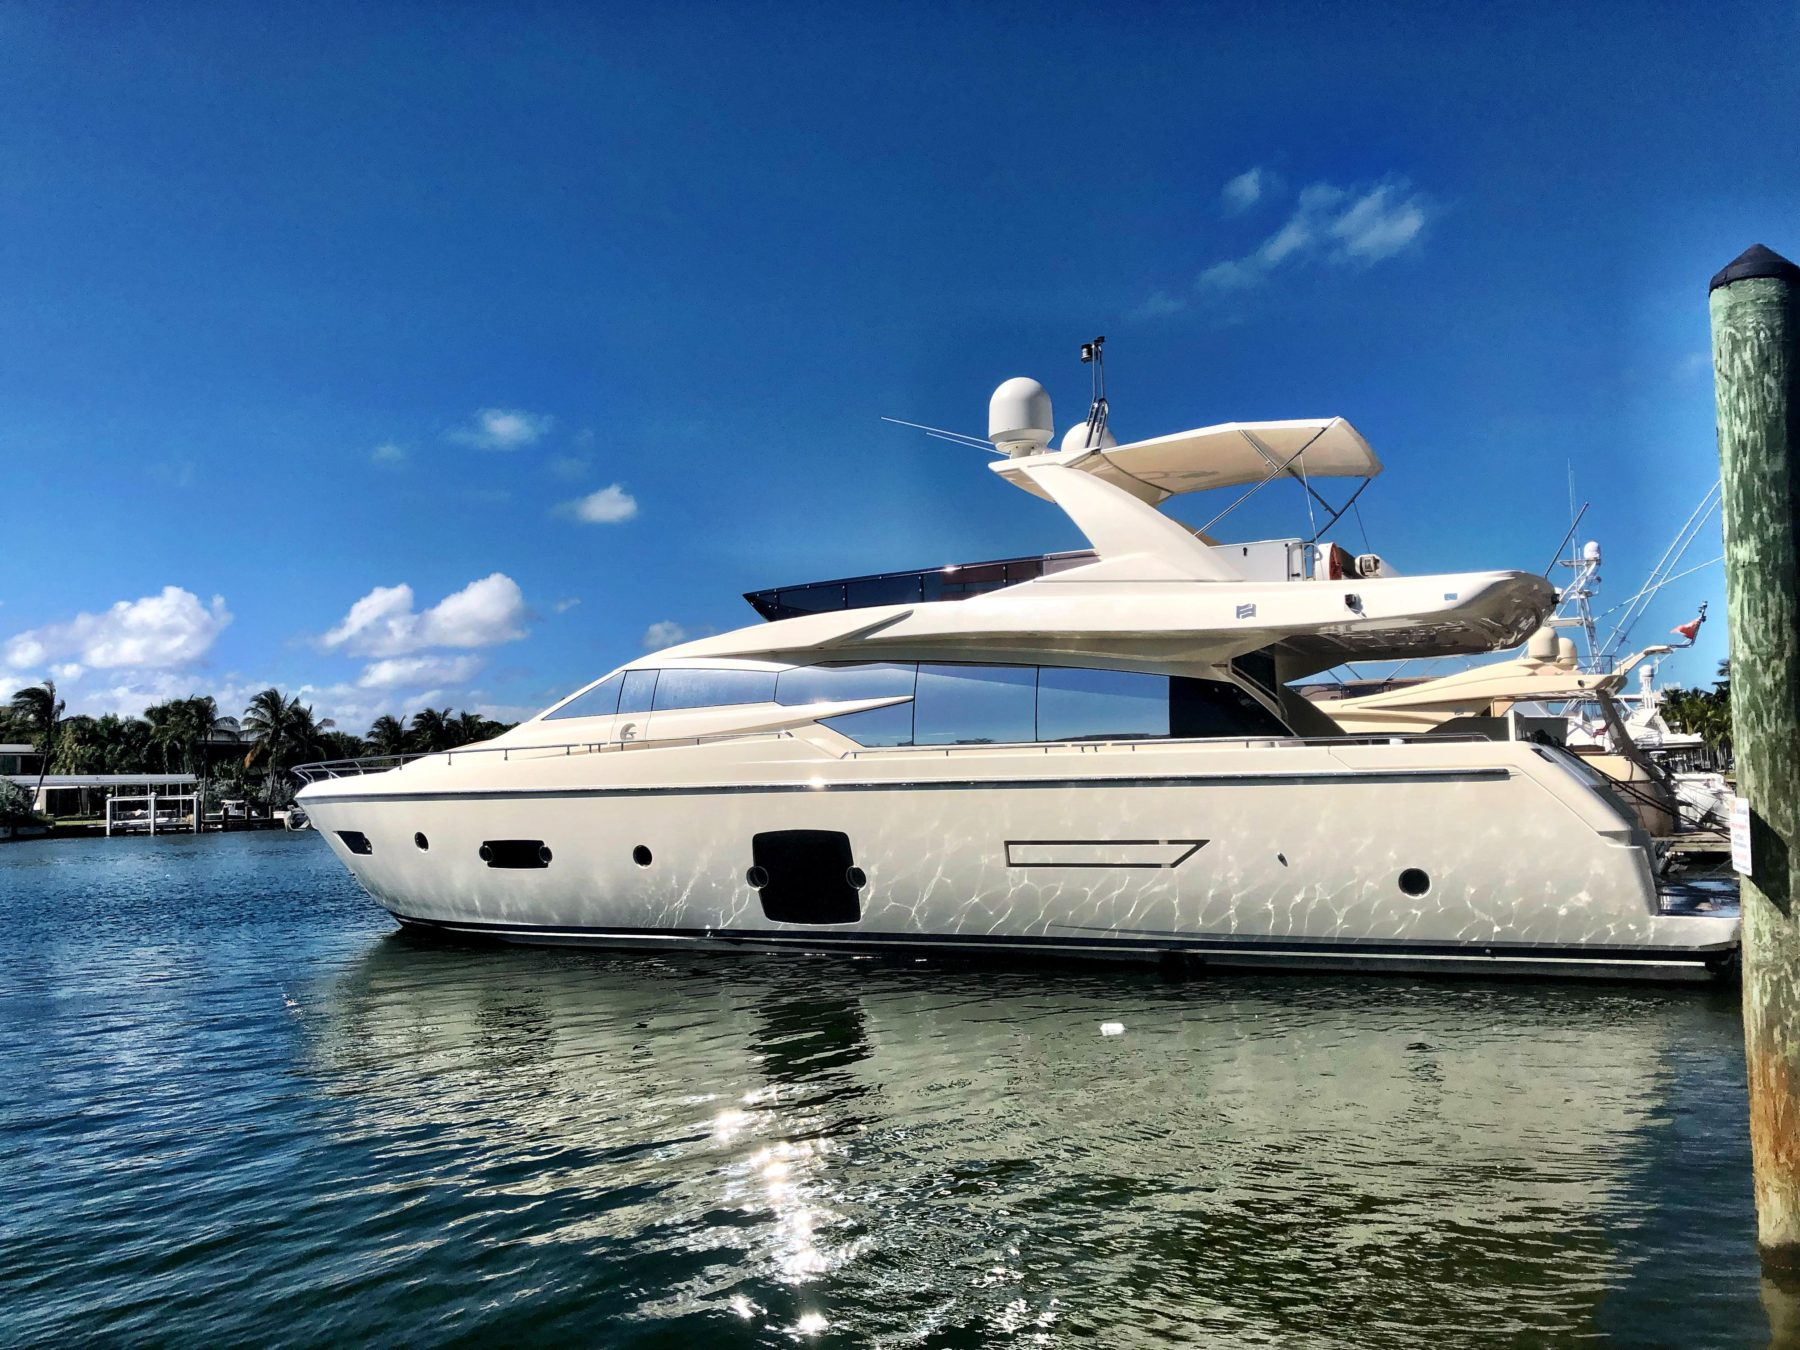 Motoryacht for Cruising - Ferretti Yacht 720